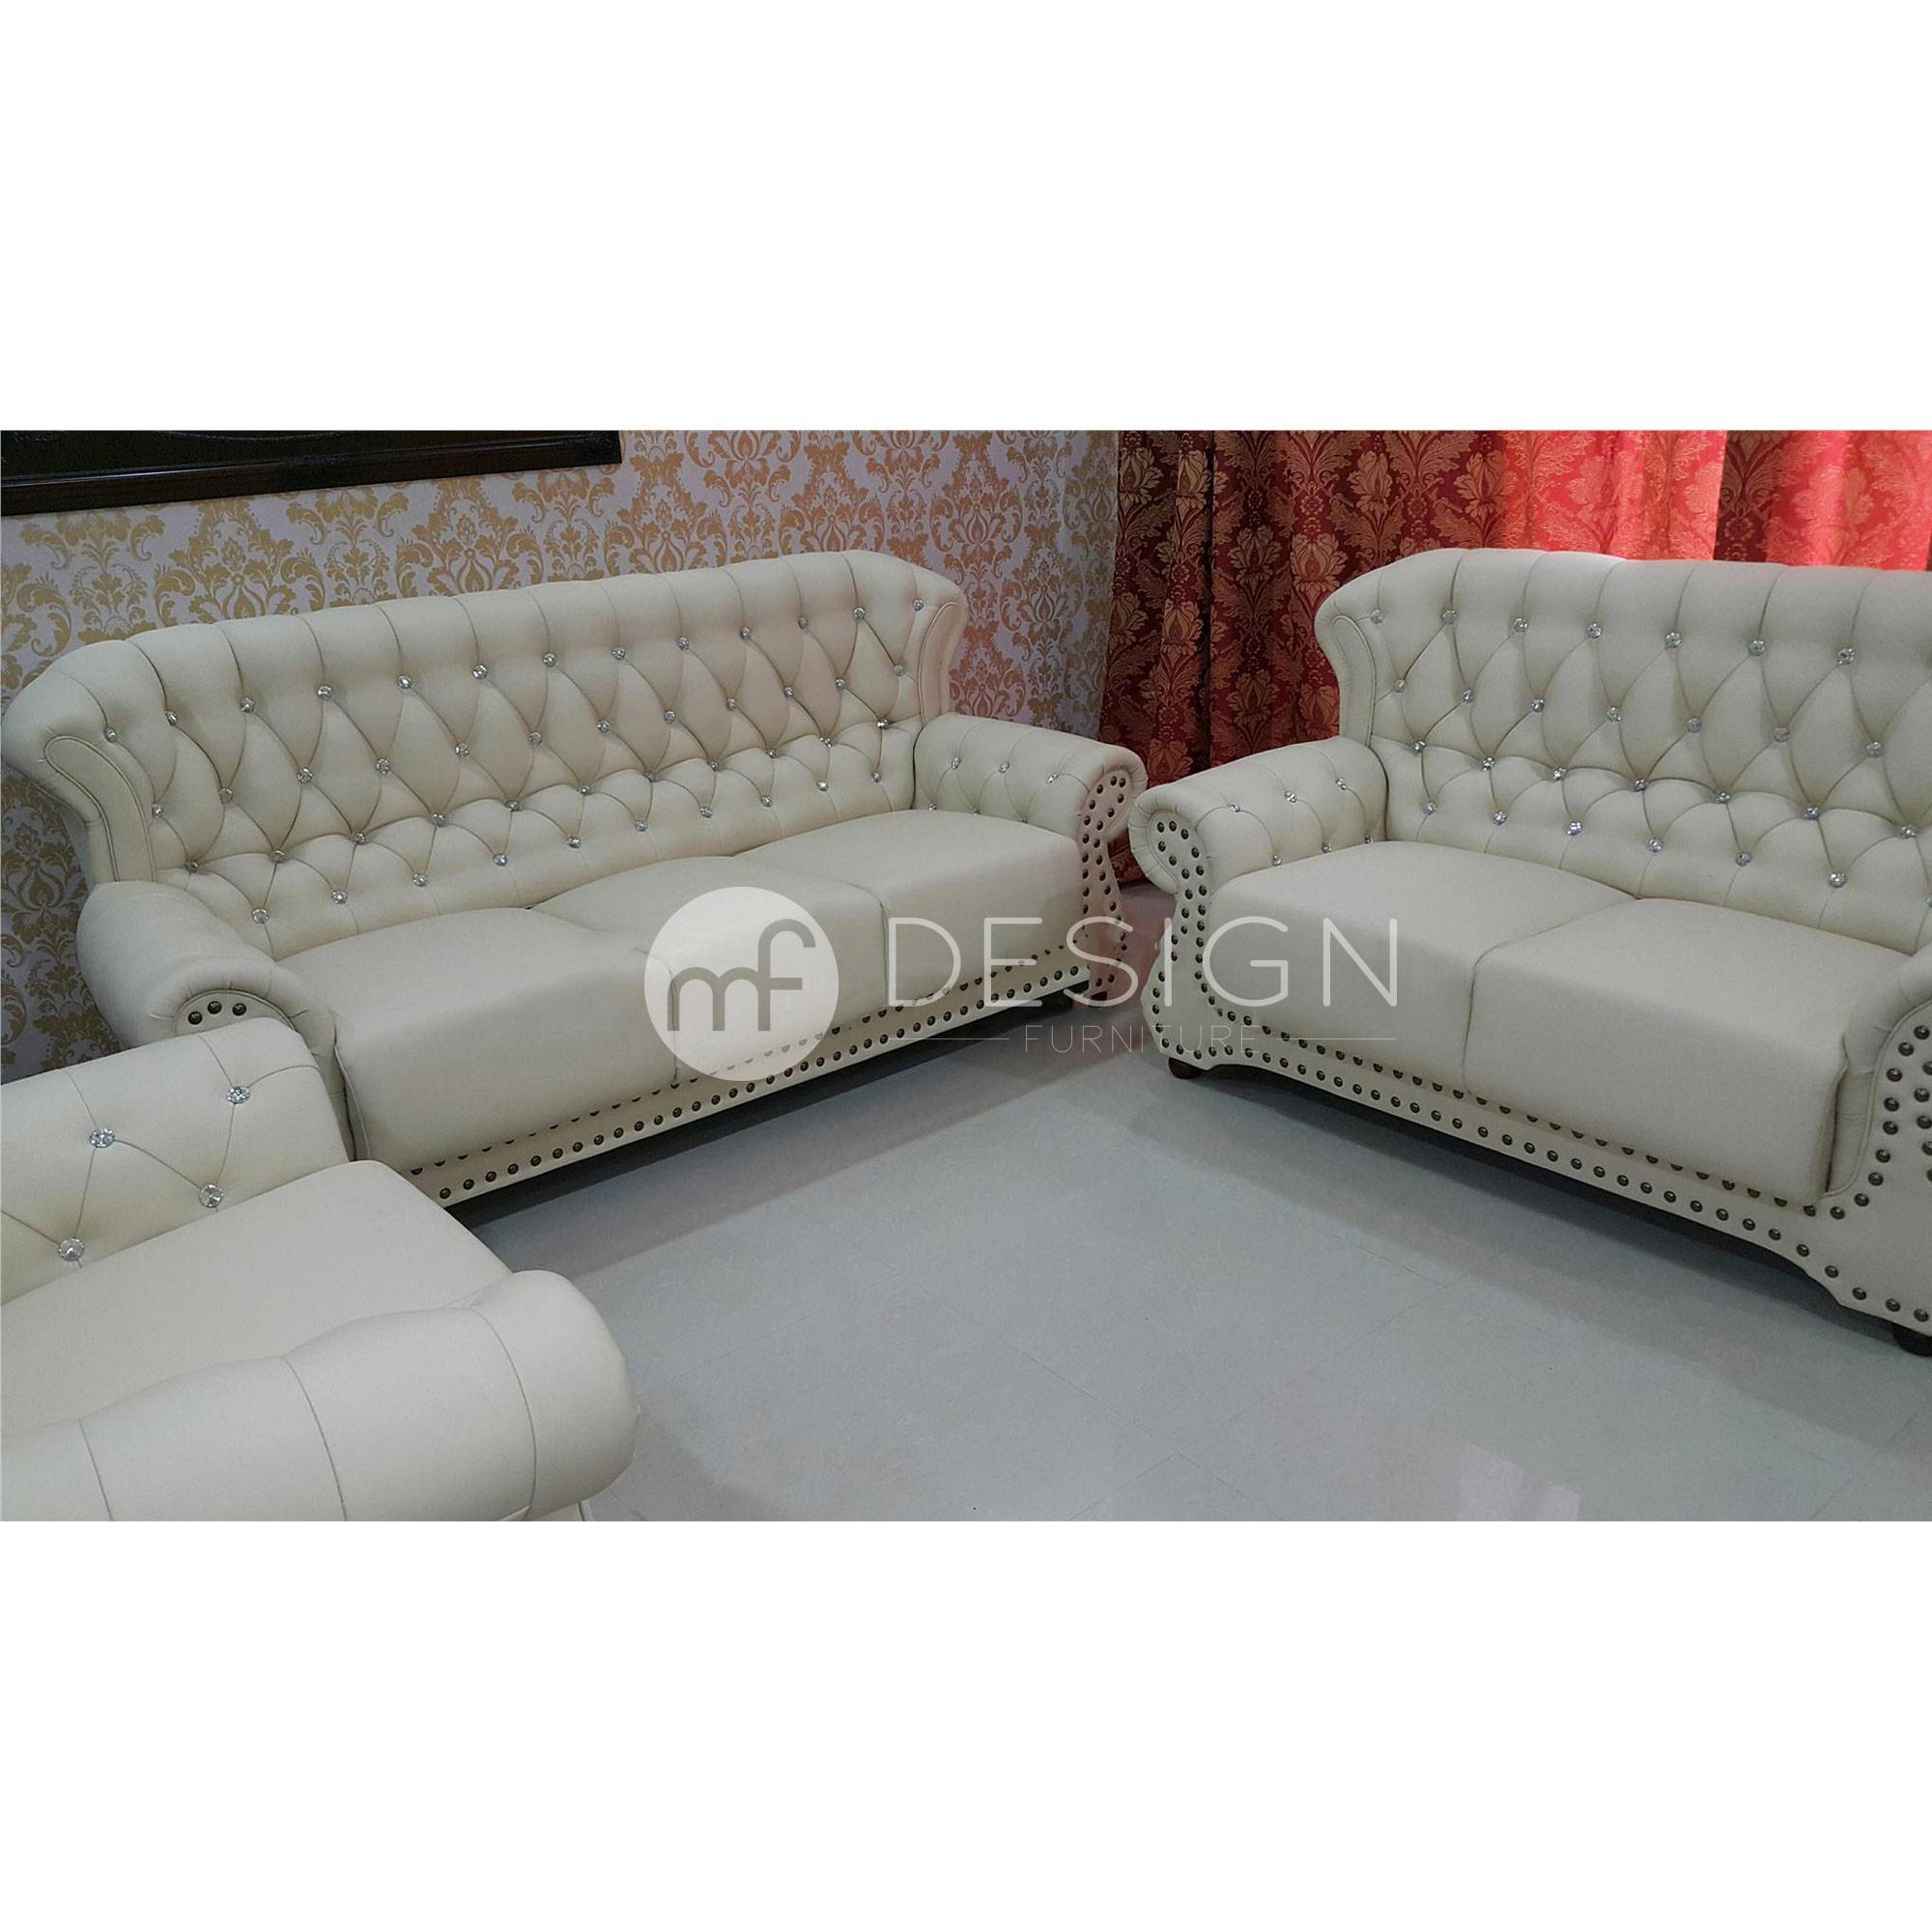 sunbrella seater with sofa viesso cushions diamond tex base